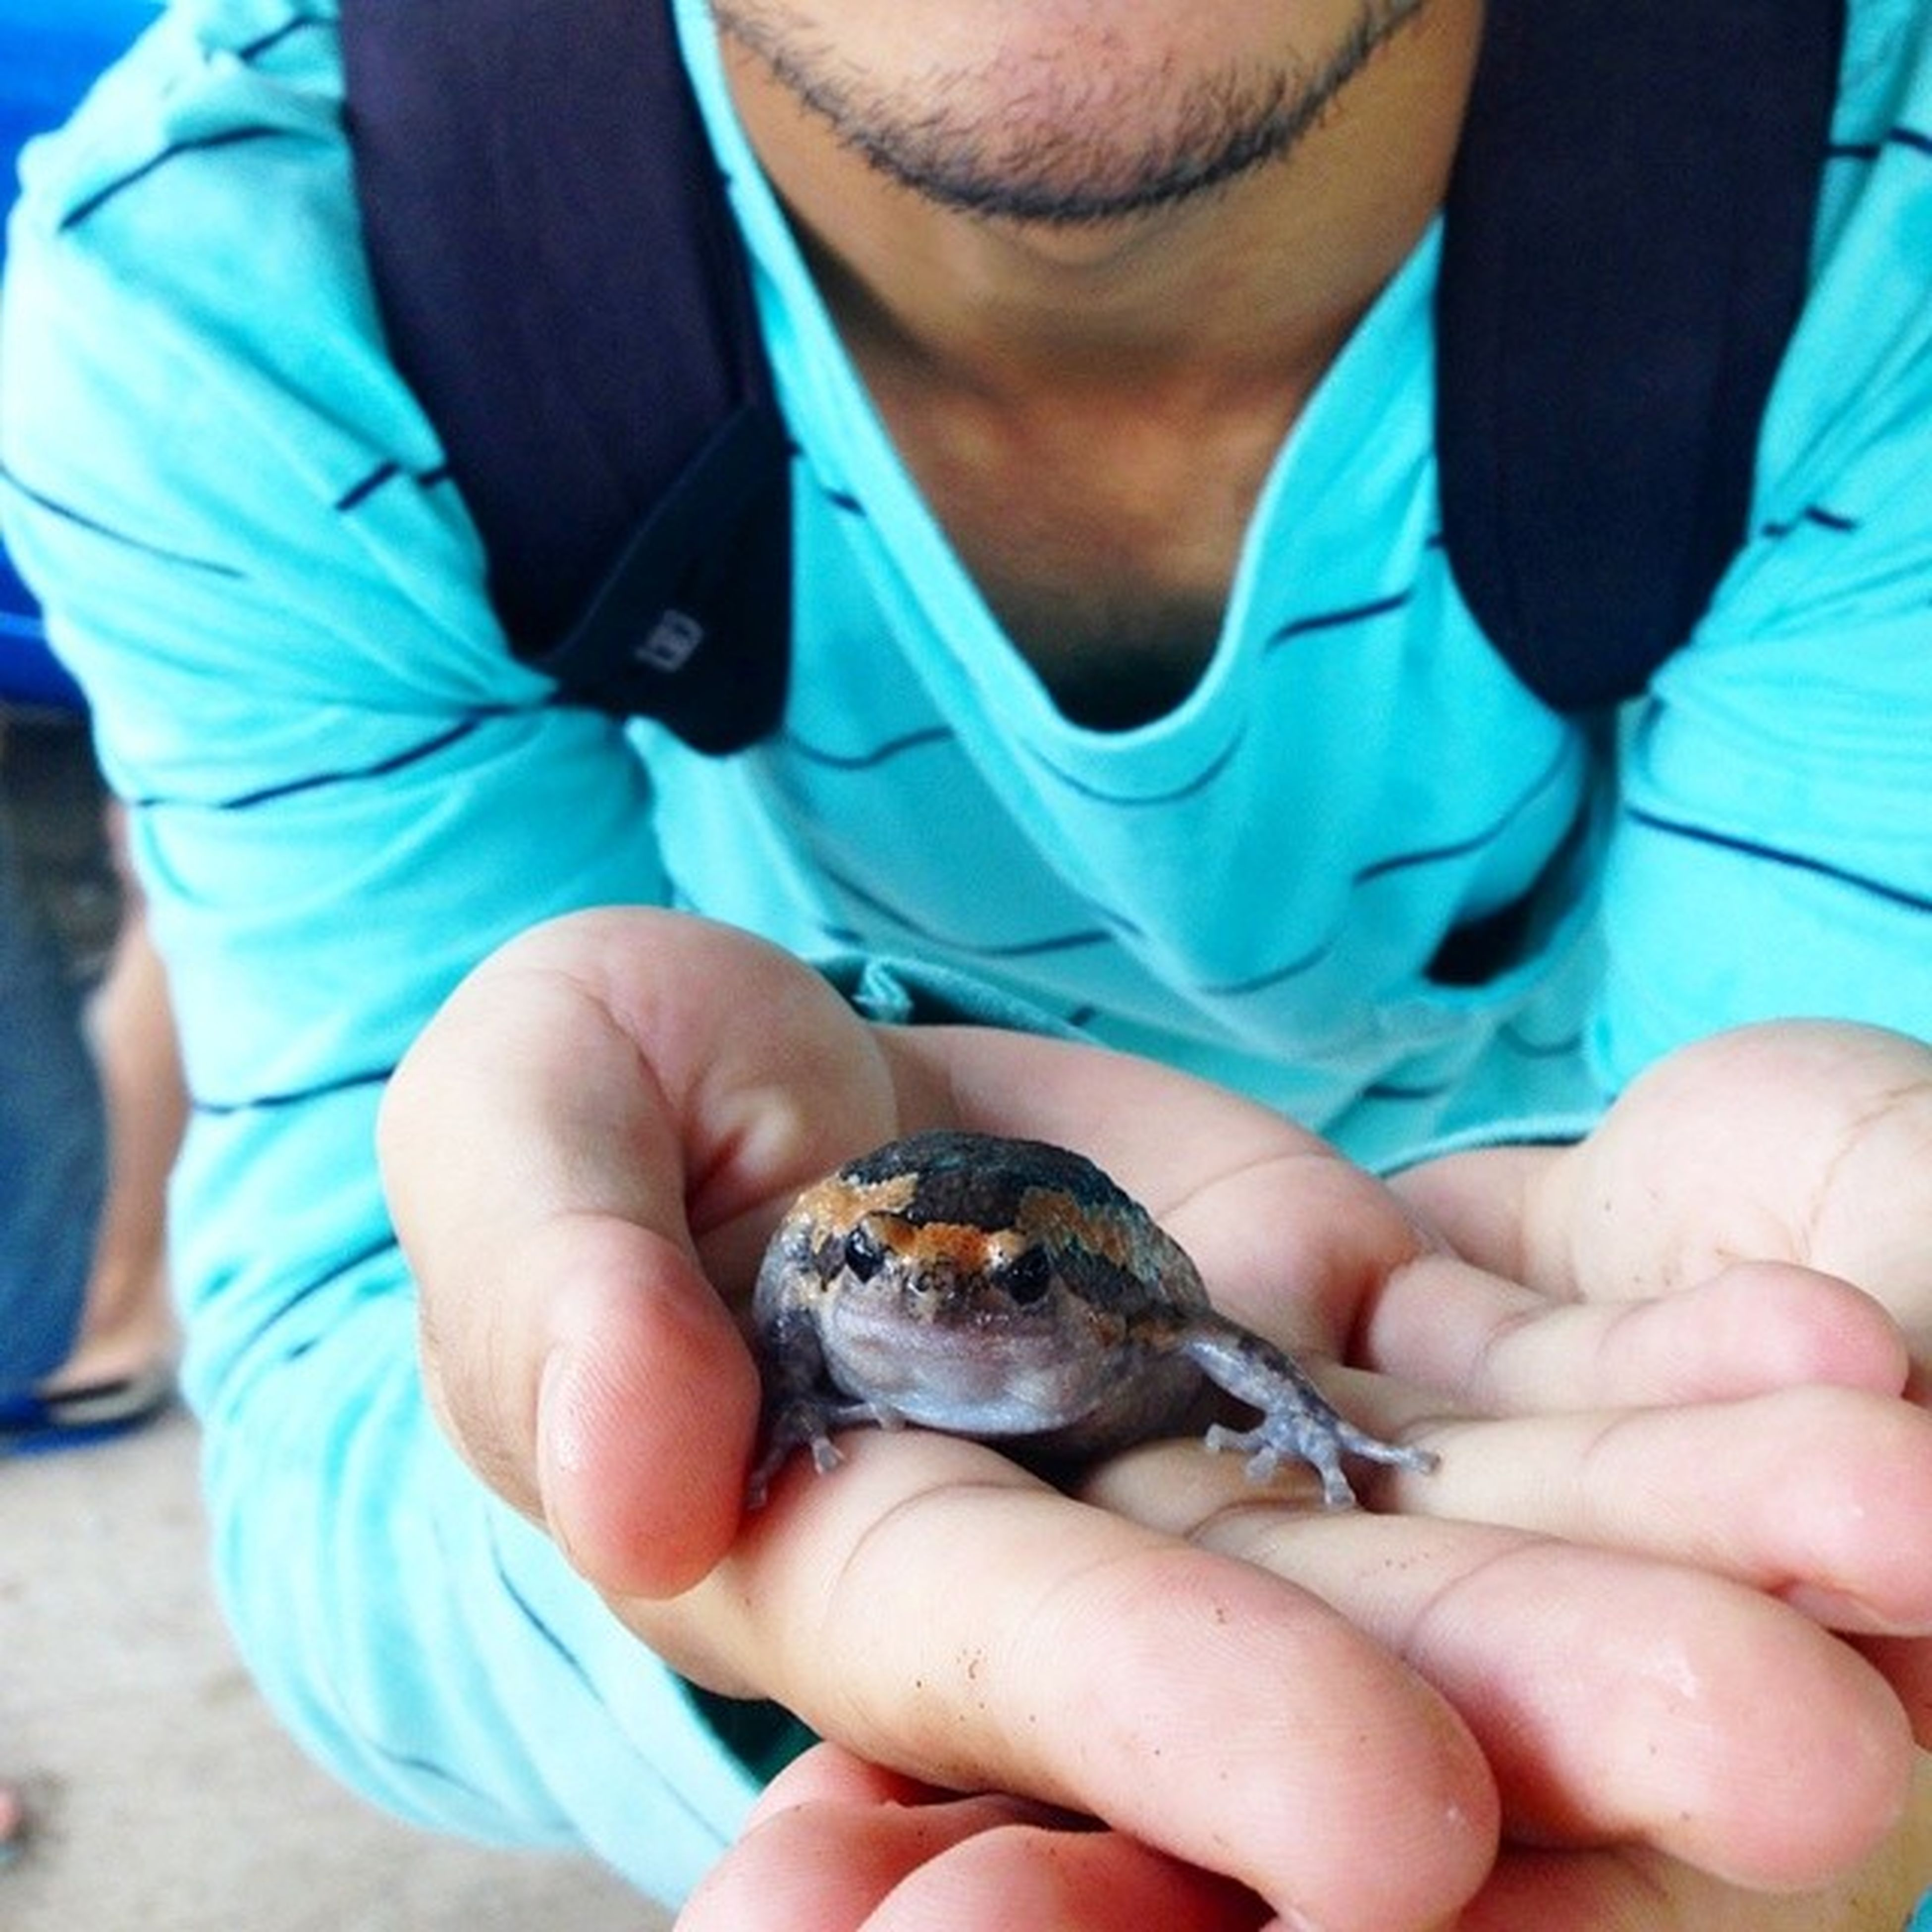 person, animal themes, holding, one animal, lifestyles, leisure activity, men, animals in the wild, part of, wildlife, human finger, close-up, care, togetherness, unrecognizable person, cropped